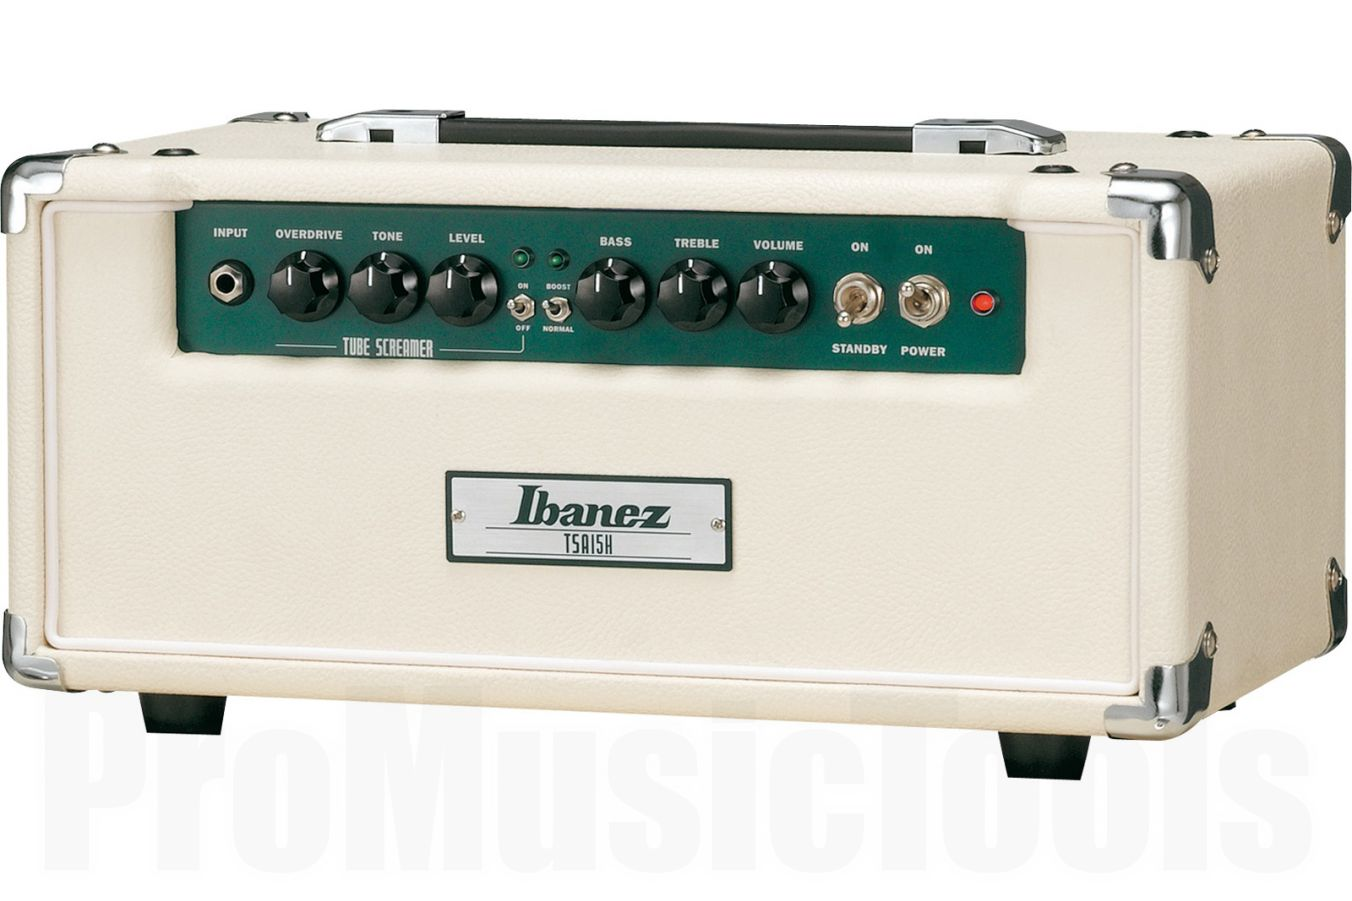 Ibanez TSA15H Tube Screamer Head - new in non-original box